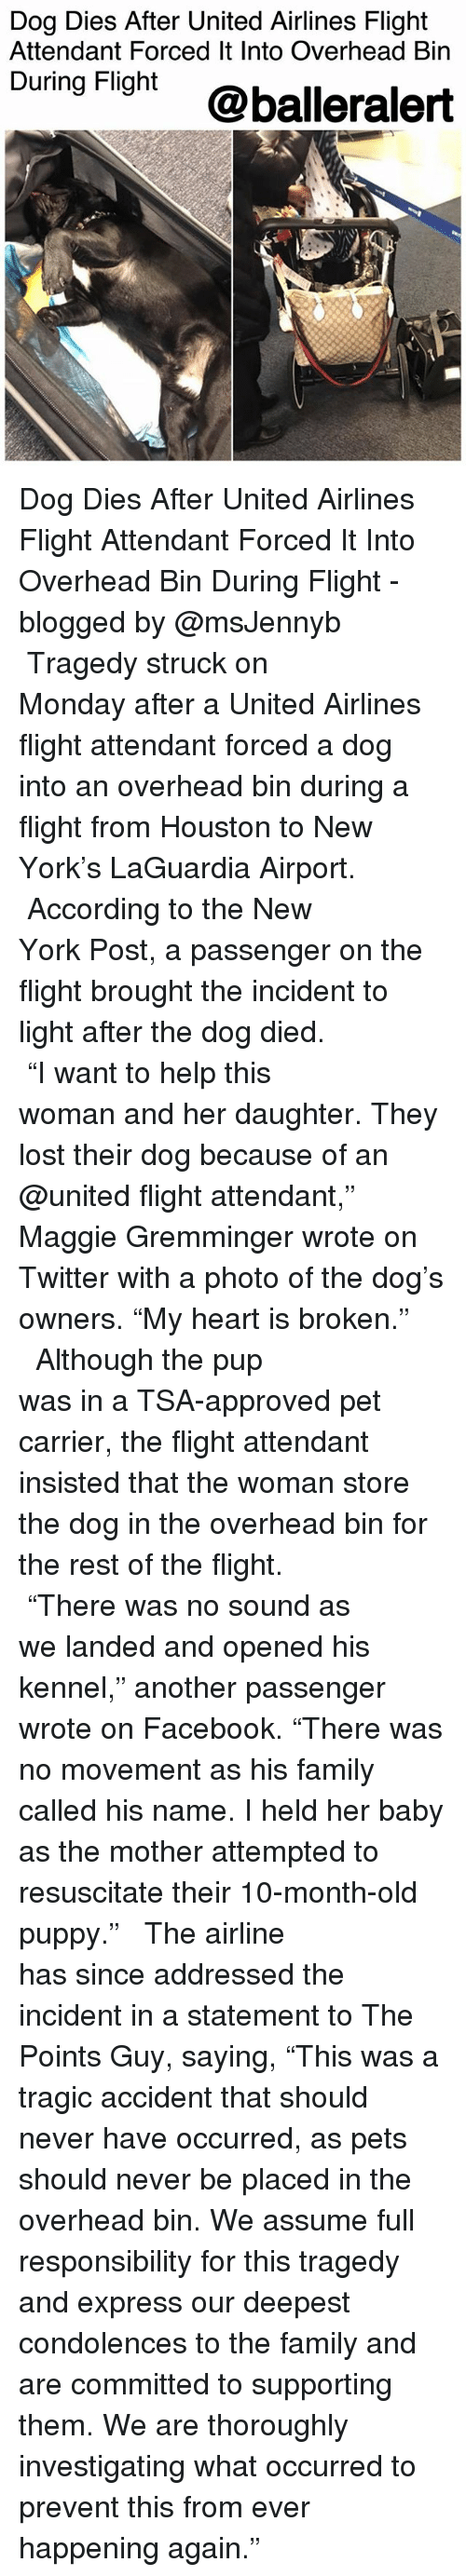 """Facebook, Family, and Memes: Dog Dies After United Airlines Flight  Attendant Forced It Into Overhead Bin  During Fight @balleralert Dog Dies After United Airlines Flight Attendant Forced It Into Overhead Bin During Flight - blogged by @msJennyb ⠀⠀⠀⠀⠀⠀⠀⠀⠀ ⠀⠀⠀⠀⠀⠀⠀⠀⠀ Tragedy struck on Monday after a United Airlines flight attendant forced a dog into an overhead bin during a flight from Houston to New York's LaGuardia Airport. ⠀⠀⠀⠀⠀⠀⠀⠀⠀ ⠀⠀⠀⠀⠀⠀⠀⠀⠀ According to the New York Post, a passenger on the flight brought the incident to light after the dog died. ⠀⠀⠀⠀⠀⠀⠀⠀⠀ ⠀⠀⠀⠀⠀⠀⠀⠀⠀ """"I want to help this woman and her daughter. They lost their dog because of an @united flight attendant,"""" Maggie Gremminger wrote on Twitter with a photo of the dog's owners. """"My heart is broken."""" ⠀⠀⠀⠀⠀⠀⠀⠀⠀ ⠀⠀⠀⠀⠀⠀⠀⠀⠀ Although the pup was in a TSA-approved pet carrier, the flight attendant insisted that the woman store the dog in the overhead bin for the rest of the flight. ⠀⠀⠀⠀⠀⠀⠀⠀⠀ ⠀⠀⠀⠀⠀⠀⠀⠀⠀ """"There was no sound as we landed and opened his kennel,"""" another passenger wrote on Facebook. """"There was no movement as his family called his name. I held her baby as the mother attempted to resuscitate their 10-month-old puppy."""" ⠀⠀⠀⠀⠀⠀⠀⠀⠀ ⠀⠀⠀⠀⠀⠀⠀⠀⠀ The airline has since addressed the incident in a statement to The Points Guy, saying, """"This was a tragic accident that should never have occurred, as pets should never be placed in the overhead bin. We assume full responsibility for this tragedy and express our deepest condolences to the family and are committed to supporting them. We are thoroughly investigating what occurred to prevent this from ever happening again."""""""